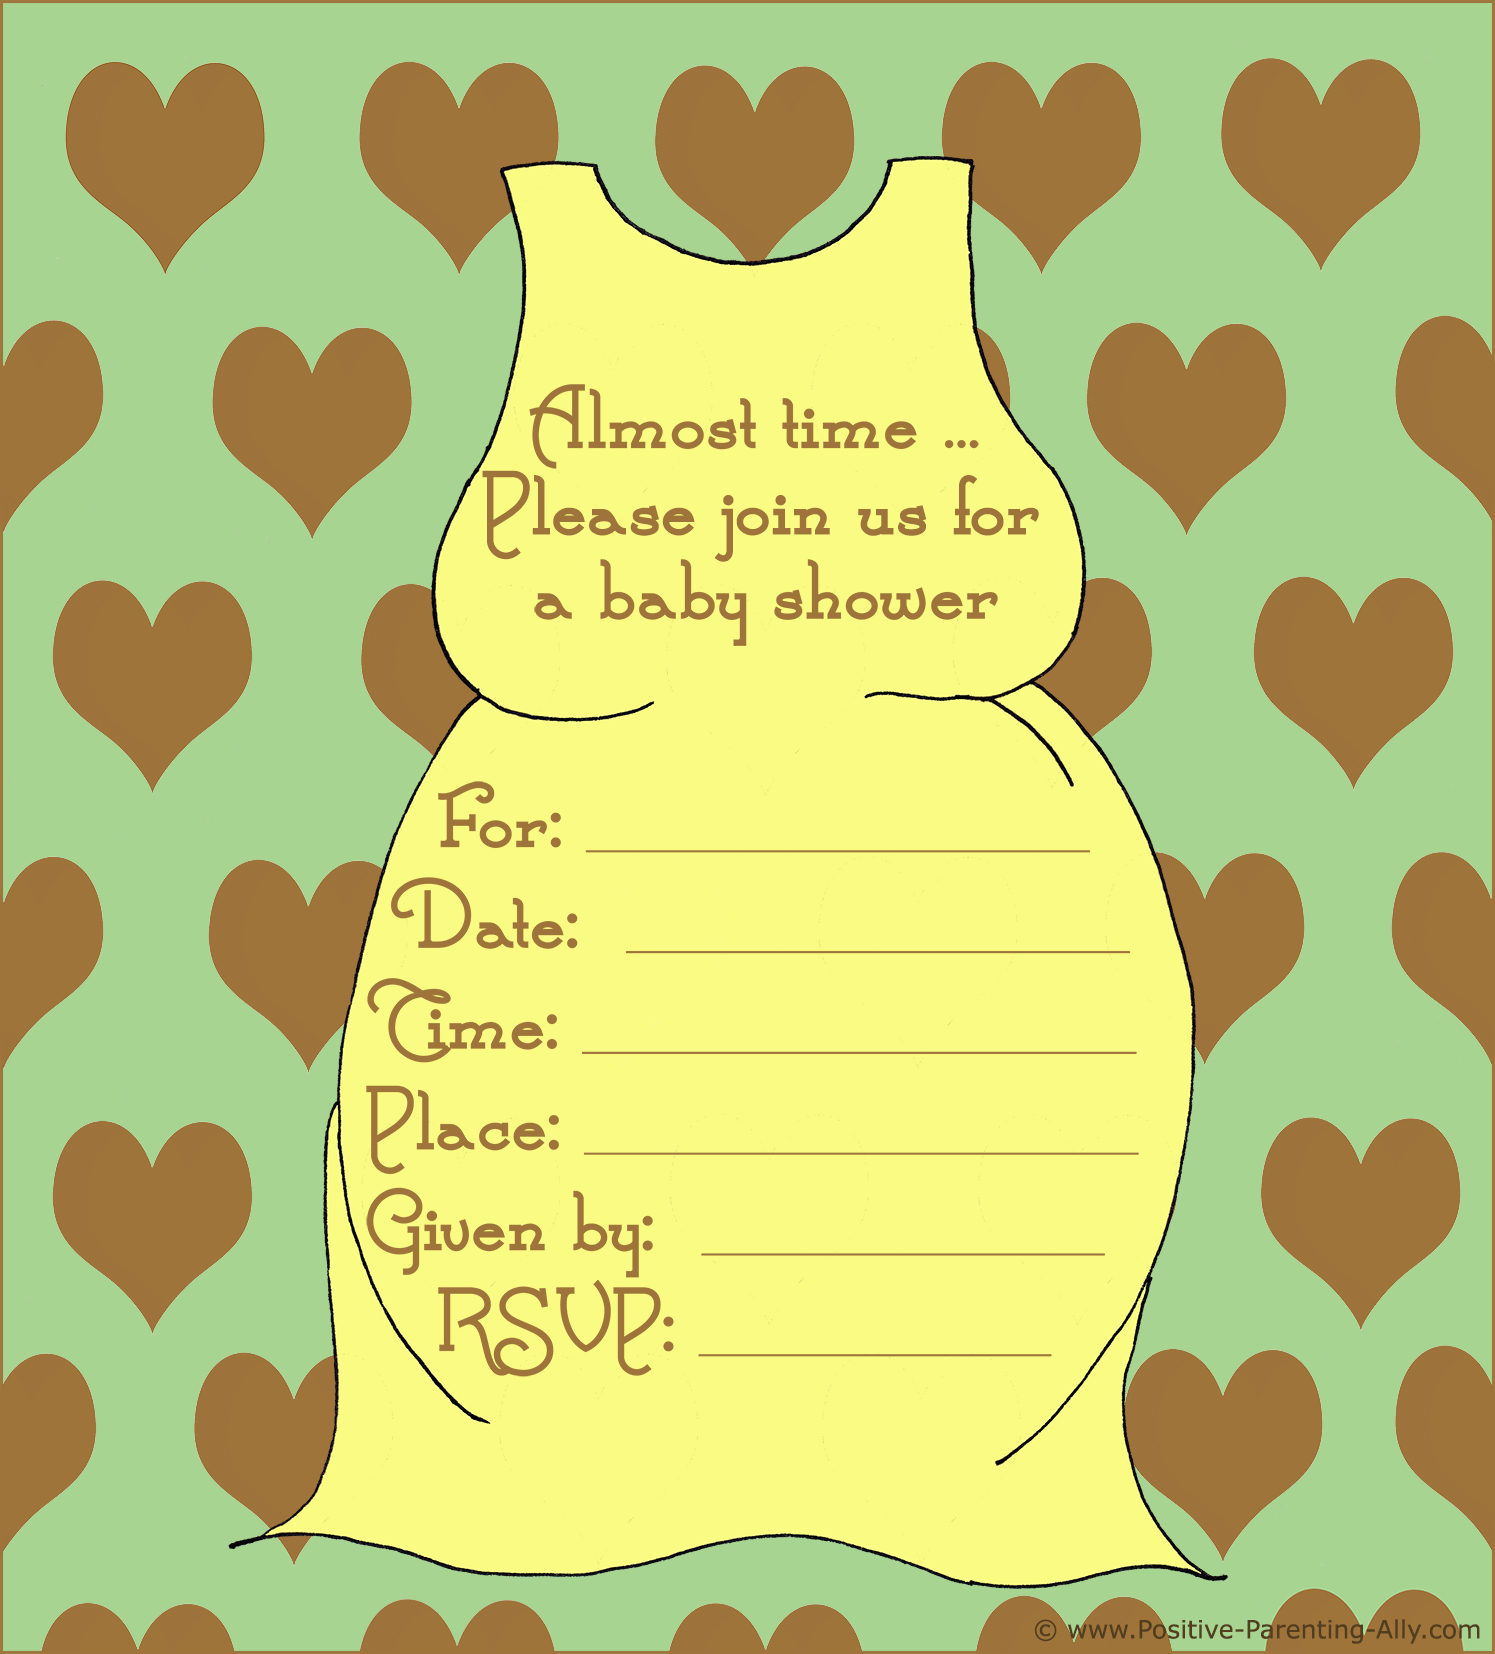 Free Printable Baby Shower Invitations In High Quality Resolution - Free Printable Blank Baby Shower Invitations